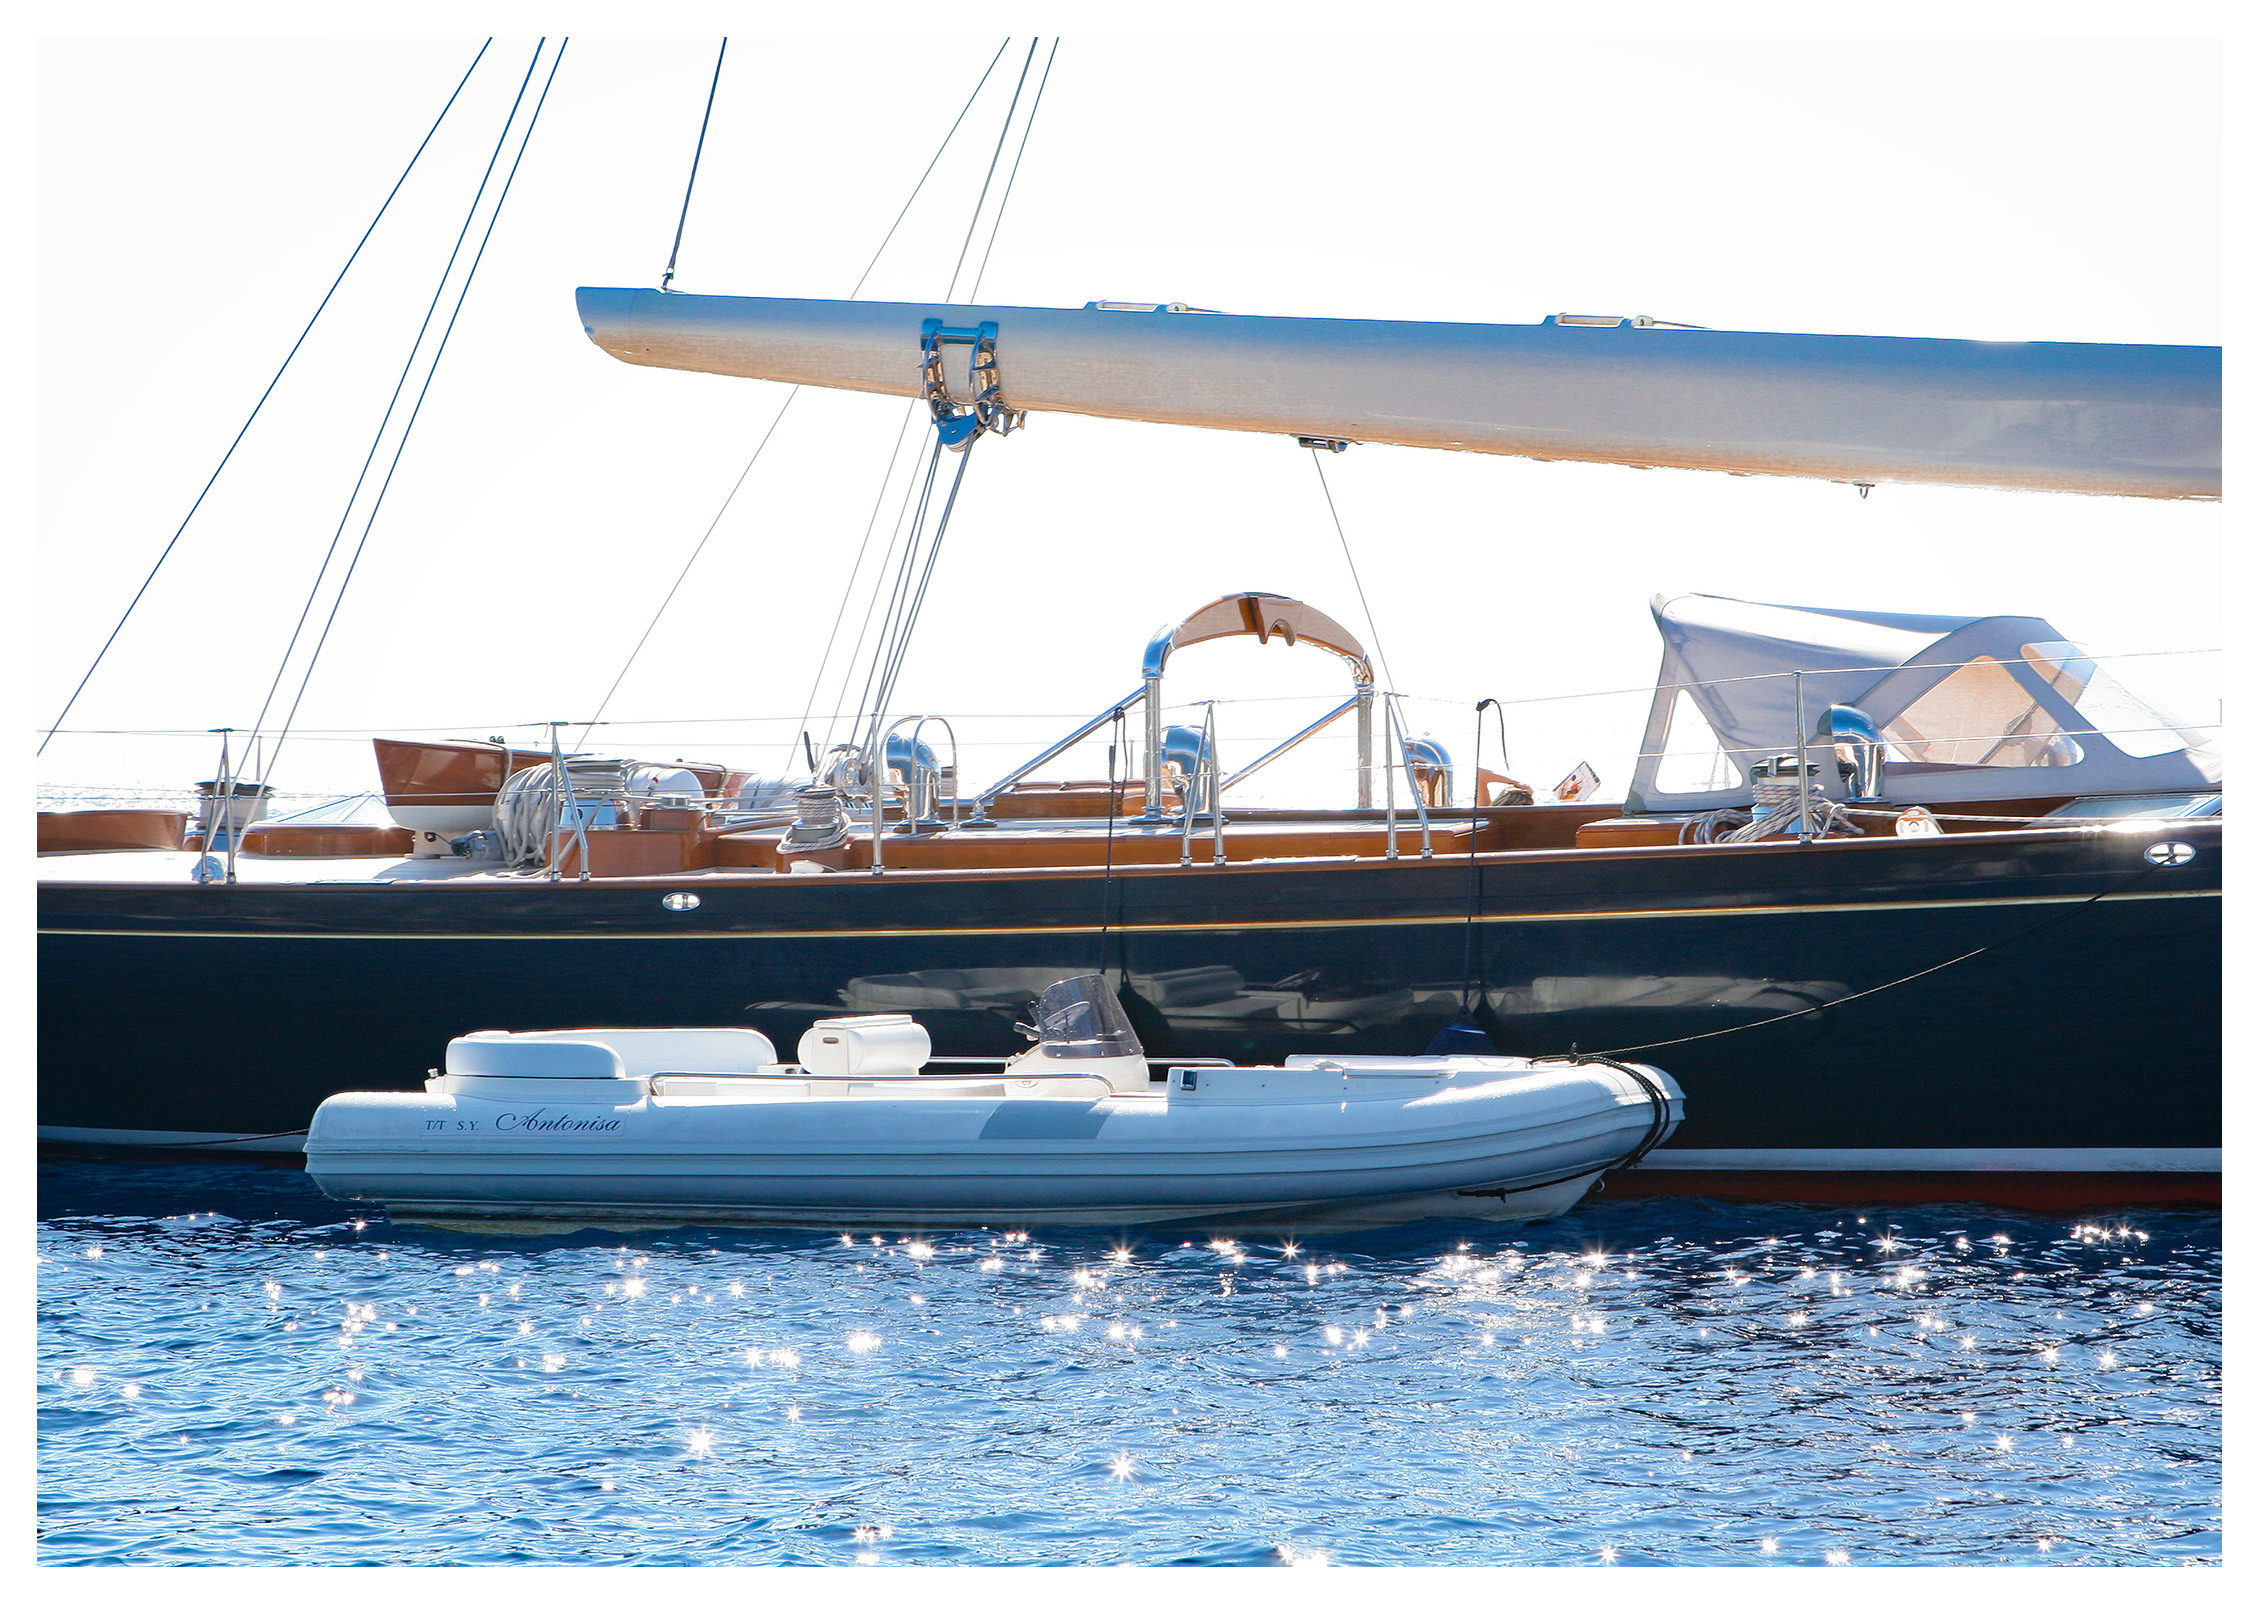 Yachting photography: Sailing yacht Antonisa with her tender anchored off Salina, Aeolian islands, Sicily